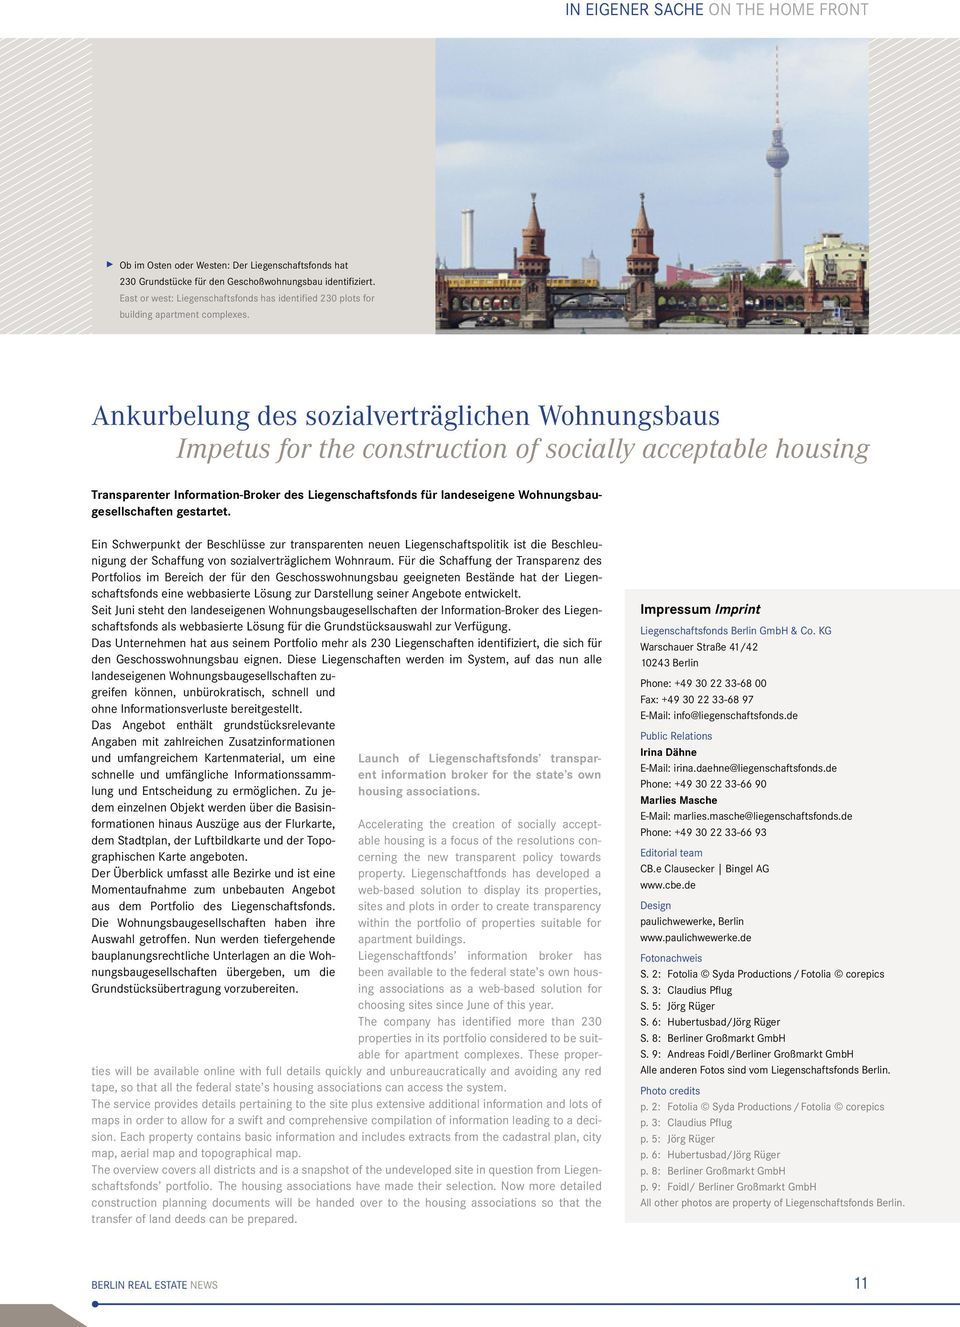 Ankurbelung des sozialverträglichen Wohnungsbaus Impetus for the construction of socially acceptable housing Transparenter Information-Broker des Liegenschaftsfonds für landeseigene